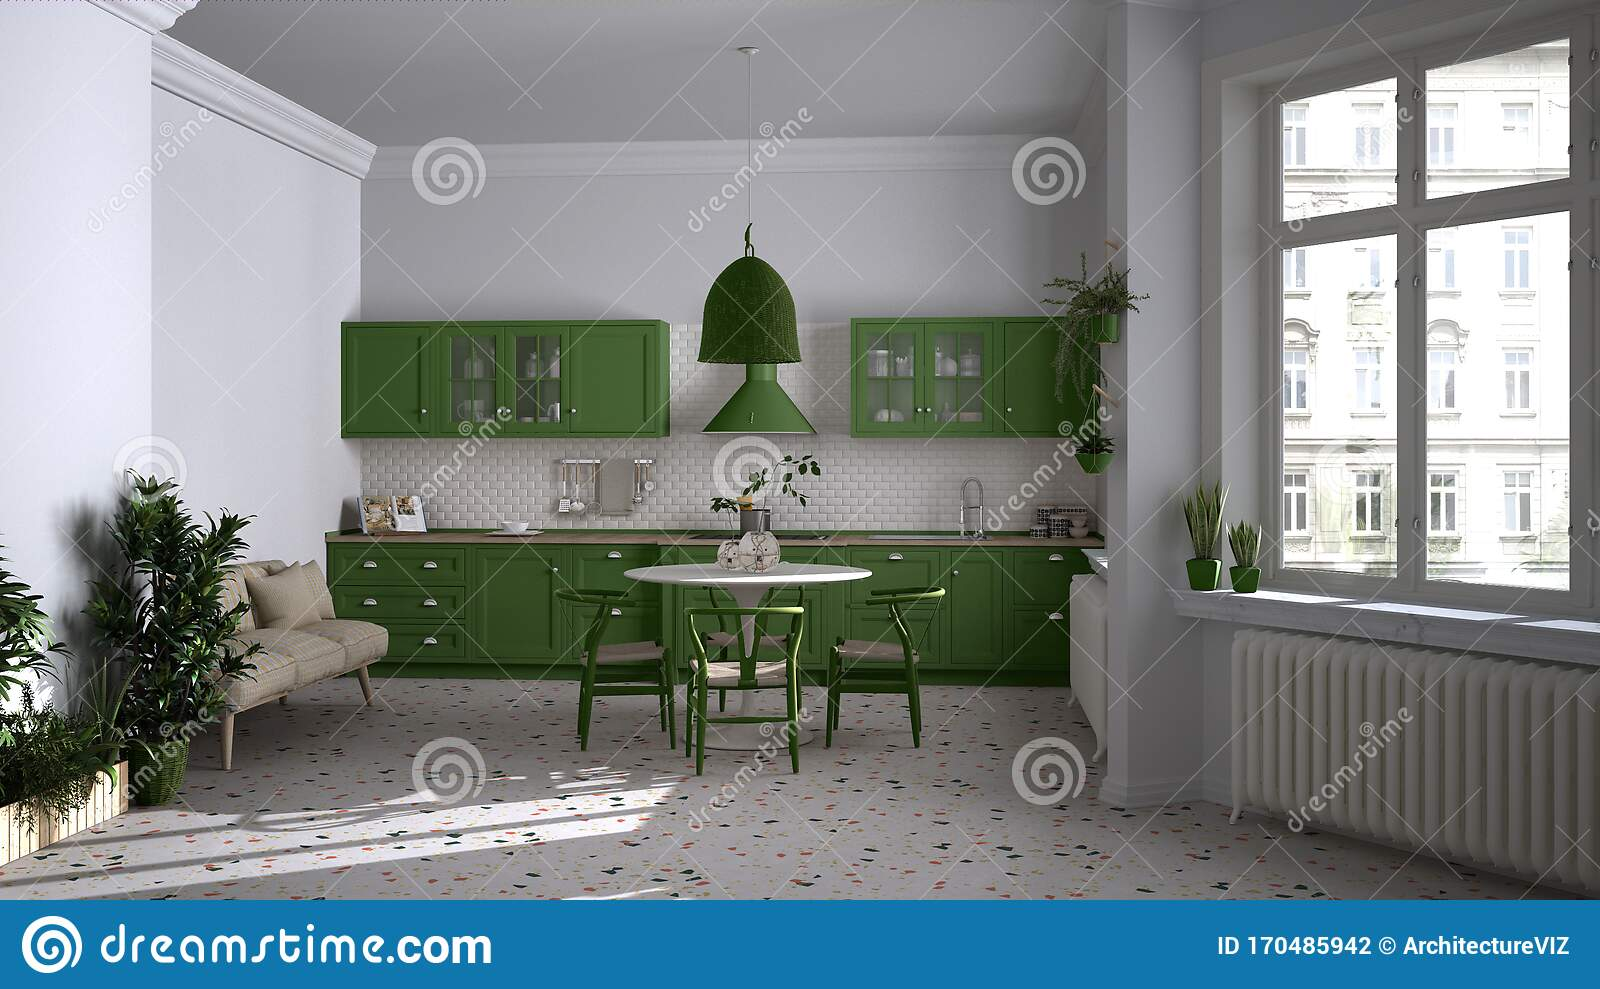 Retro White And Green Vintage Kitchen With Terrazzo Marble Floor Panoramic Windows Dining Room Round Table With Wooden Chairs Stock Photo Image Of Colorful Design 170485942